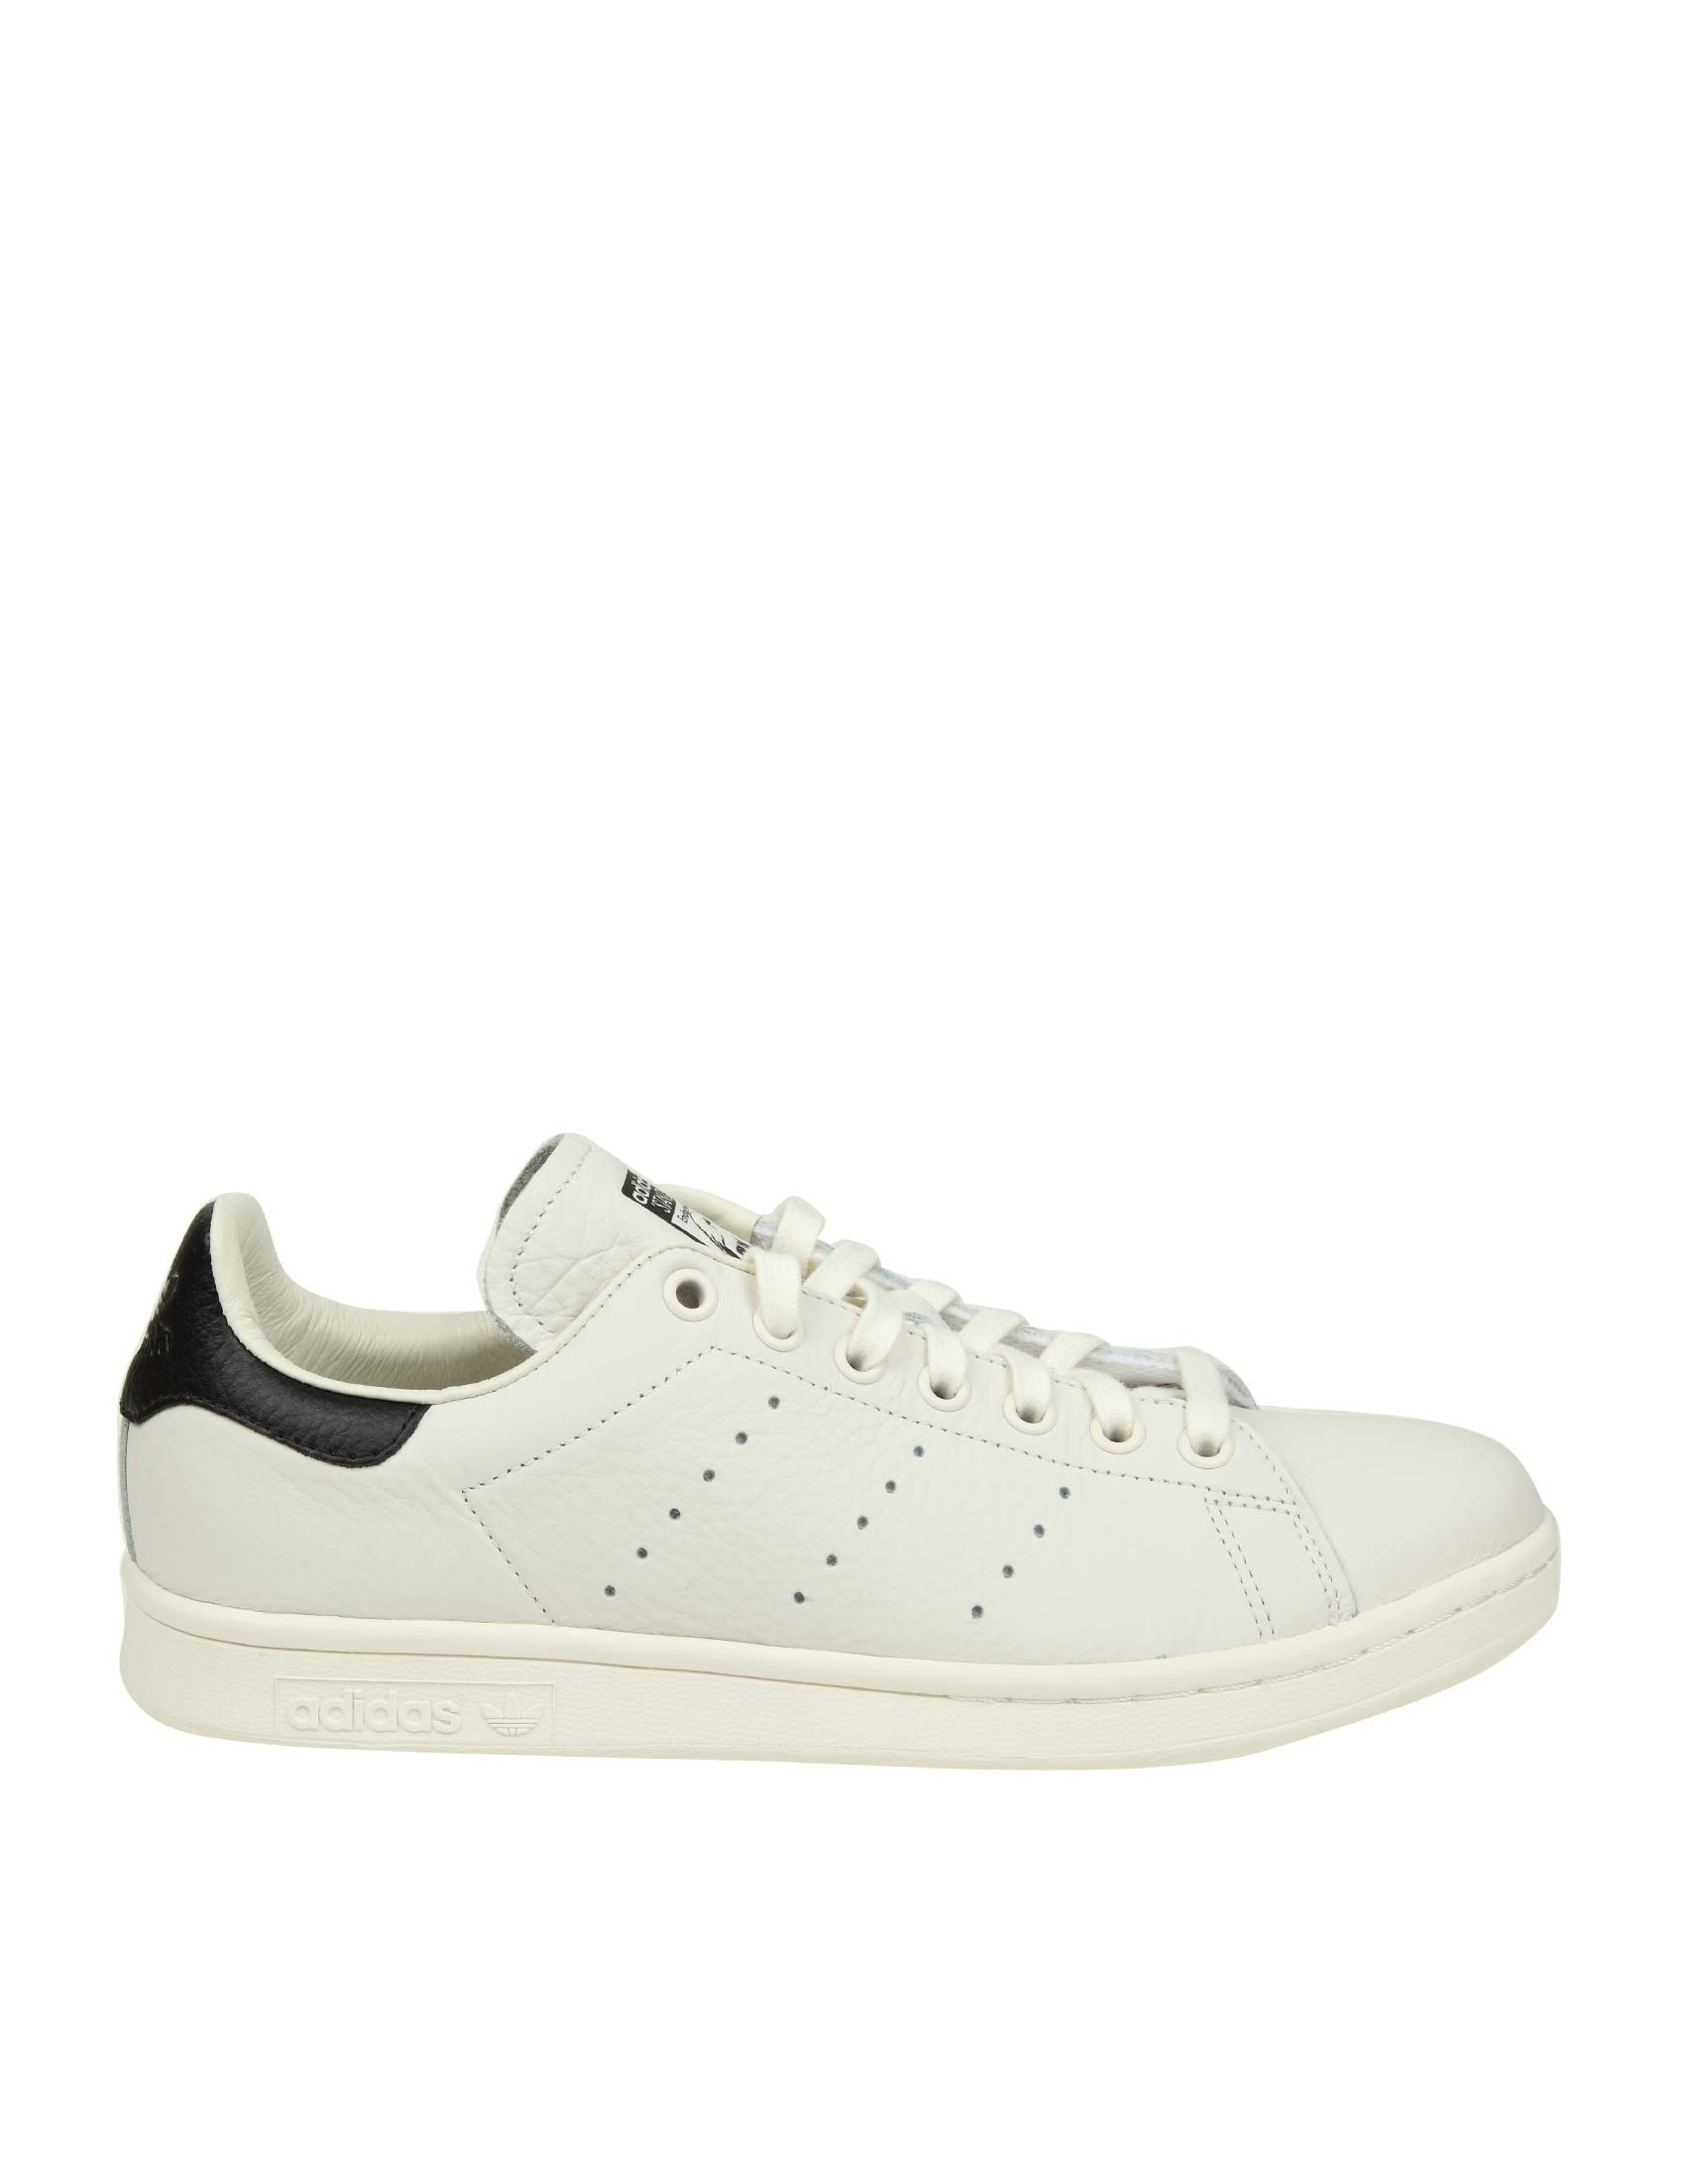 buy popular c2aac 3dbcf Adidas Men s Shoes Sneakers   White   Fall Winter 18 19